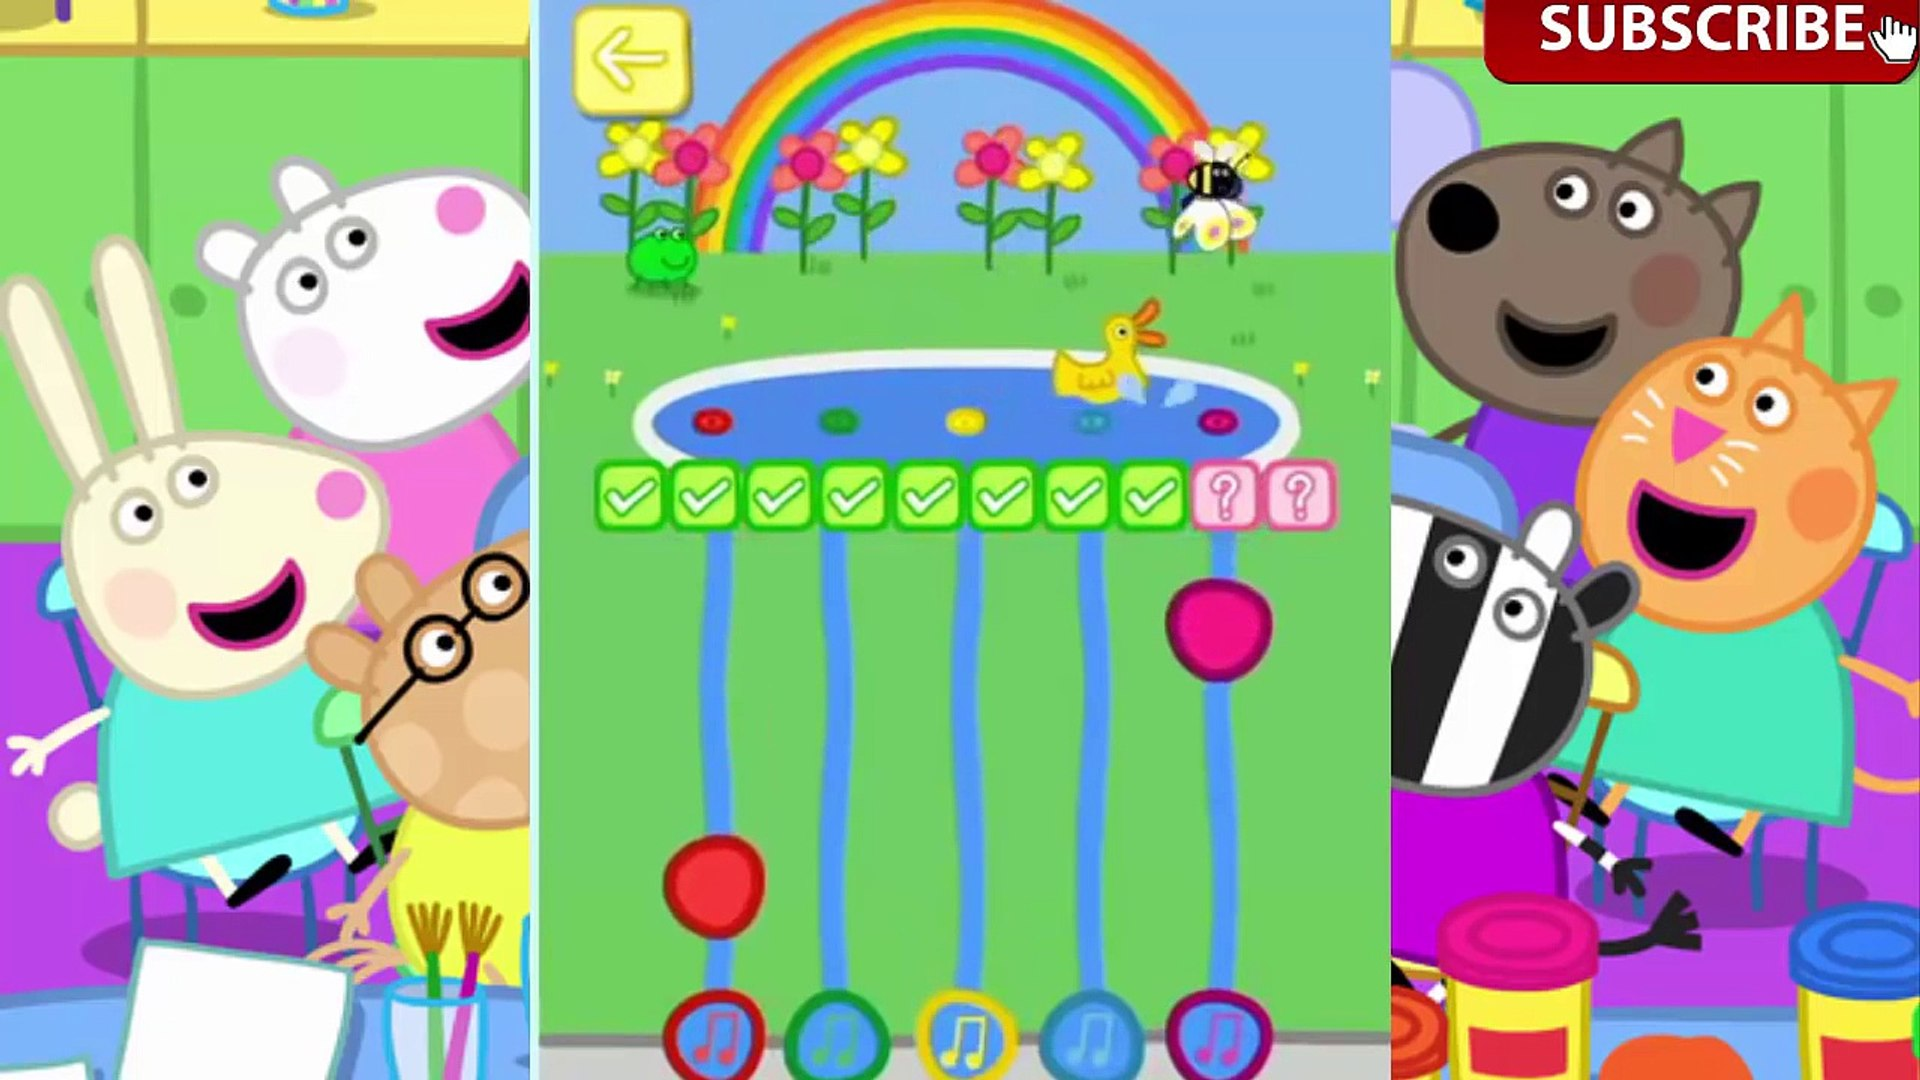 Peppa Pig Theme Park Cartoon Games For Kids Education Apps For Kids